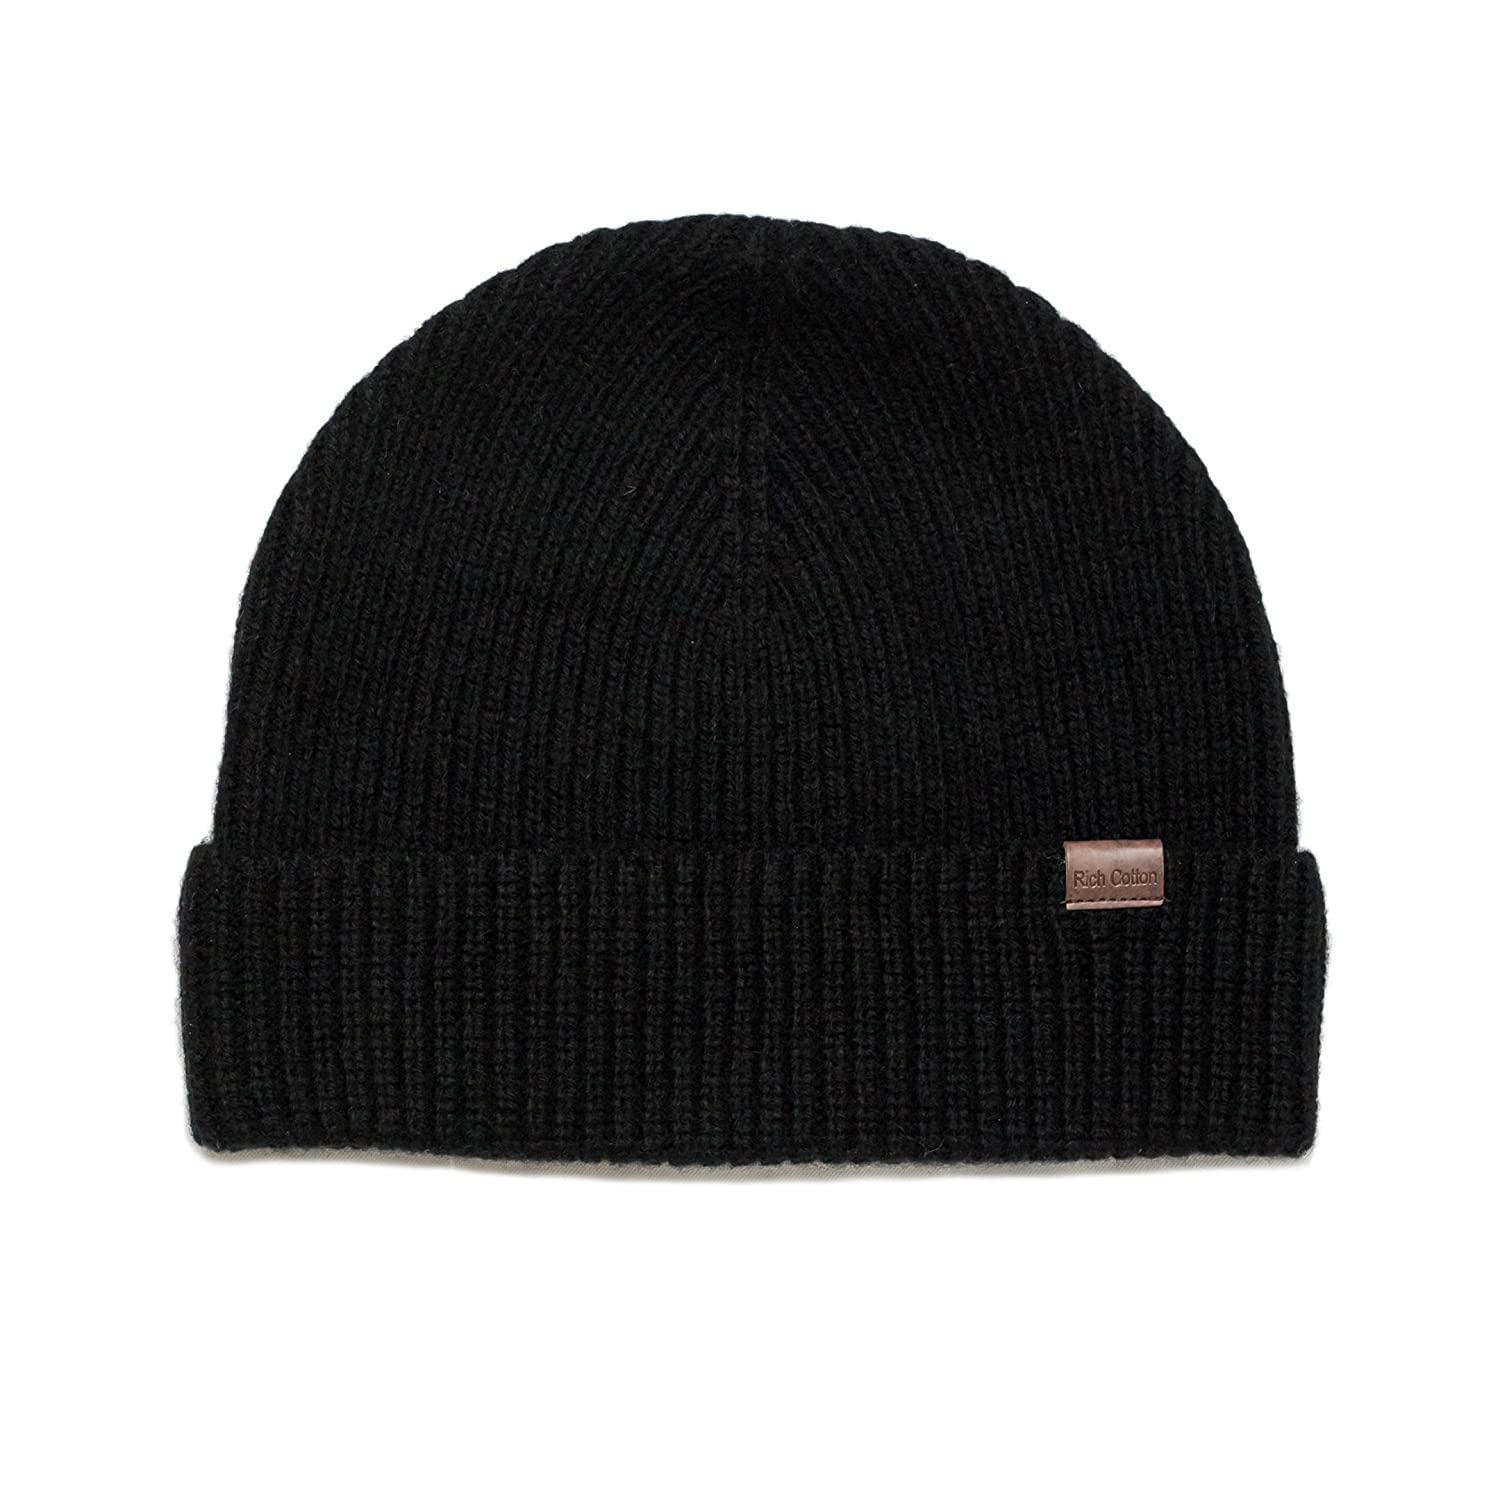 f8ccfa4a8374fc Rich Cotton Beanie (Black) at Amazon Men's Clothing store: